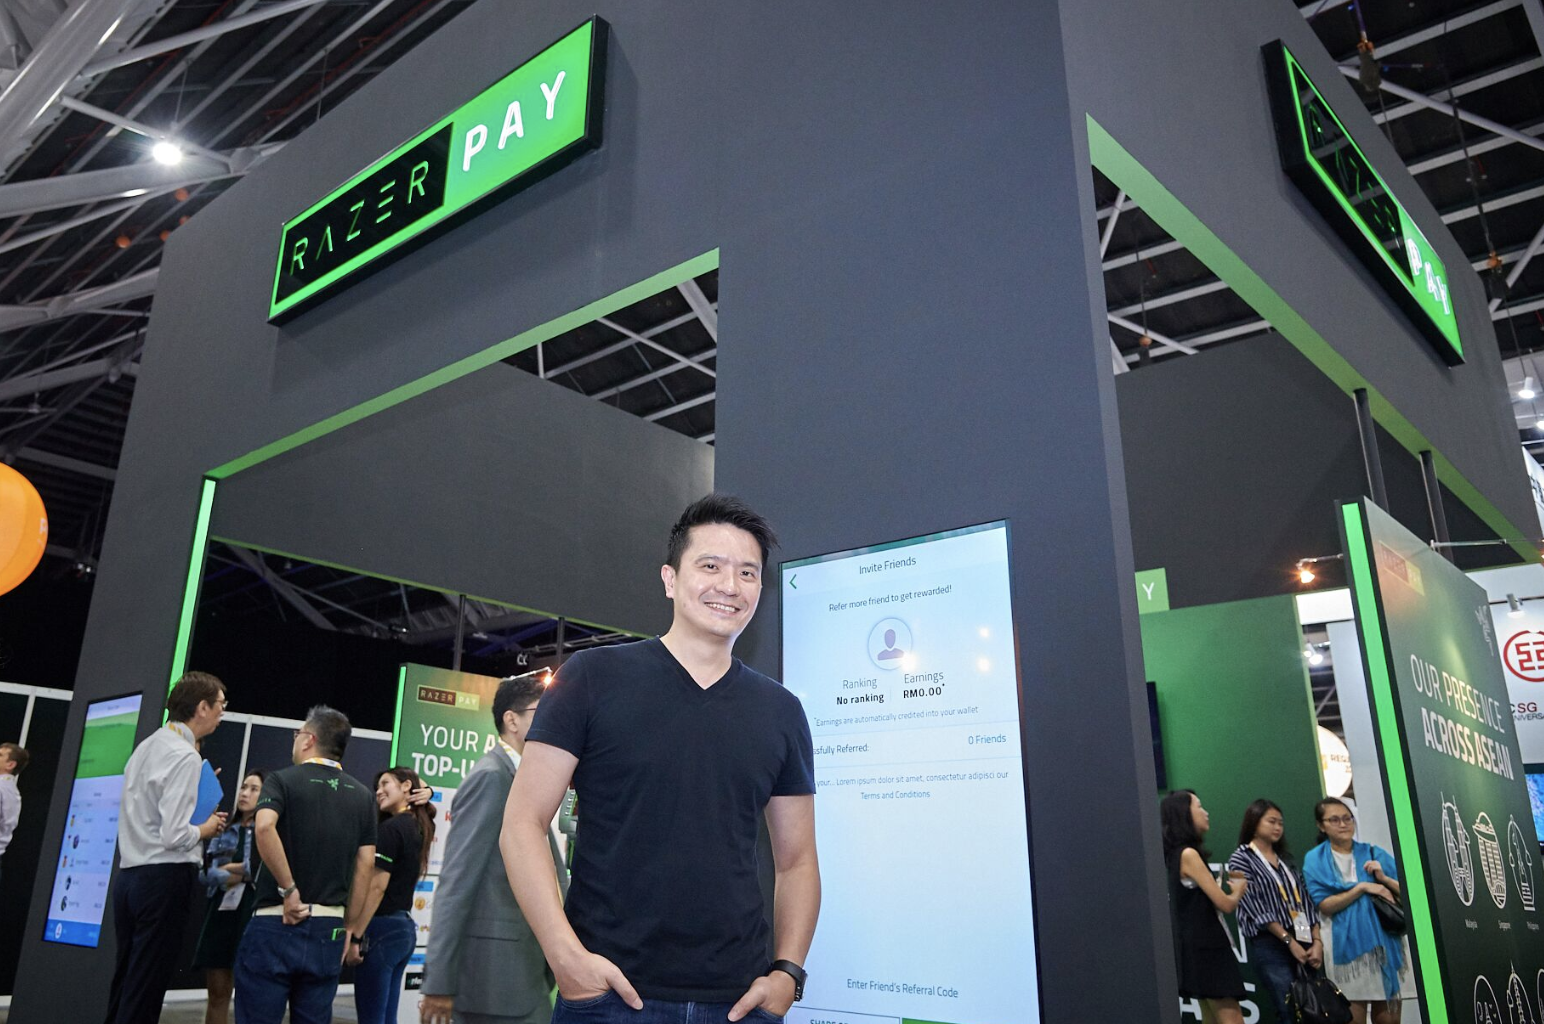 Min-Liang Tan, co-founder and CEO, Razer. Photo courtesy: Razer